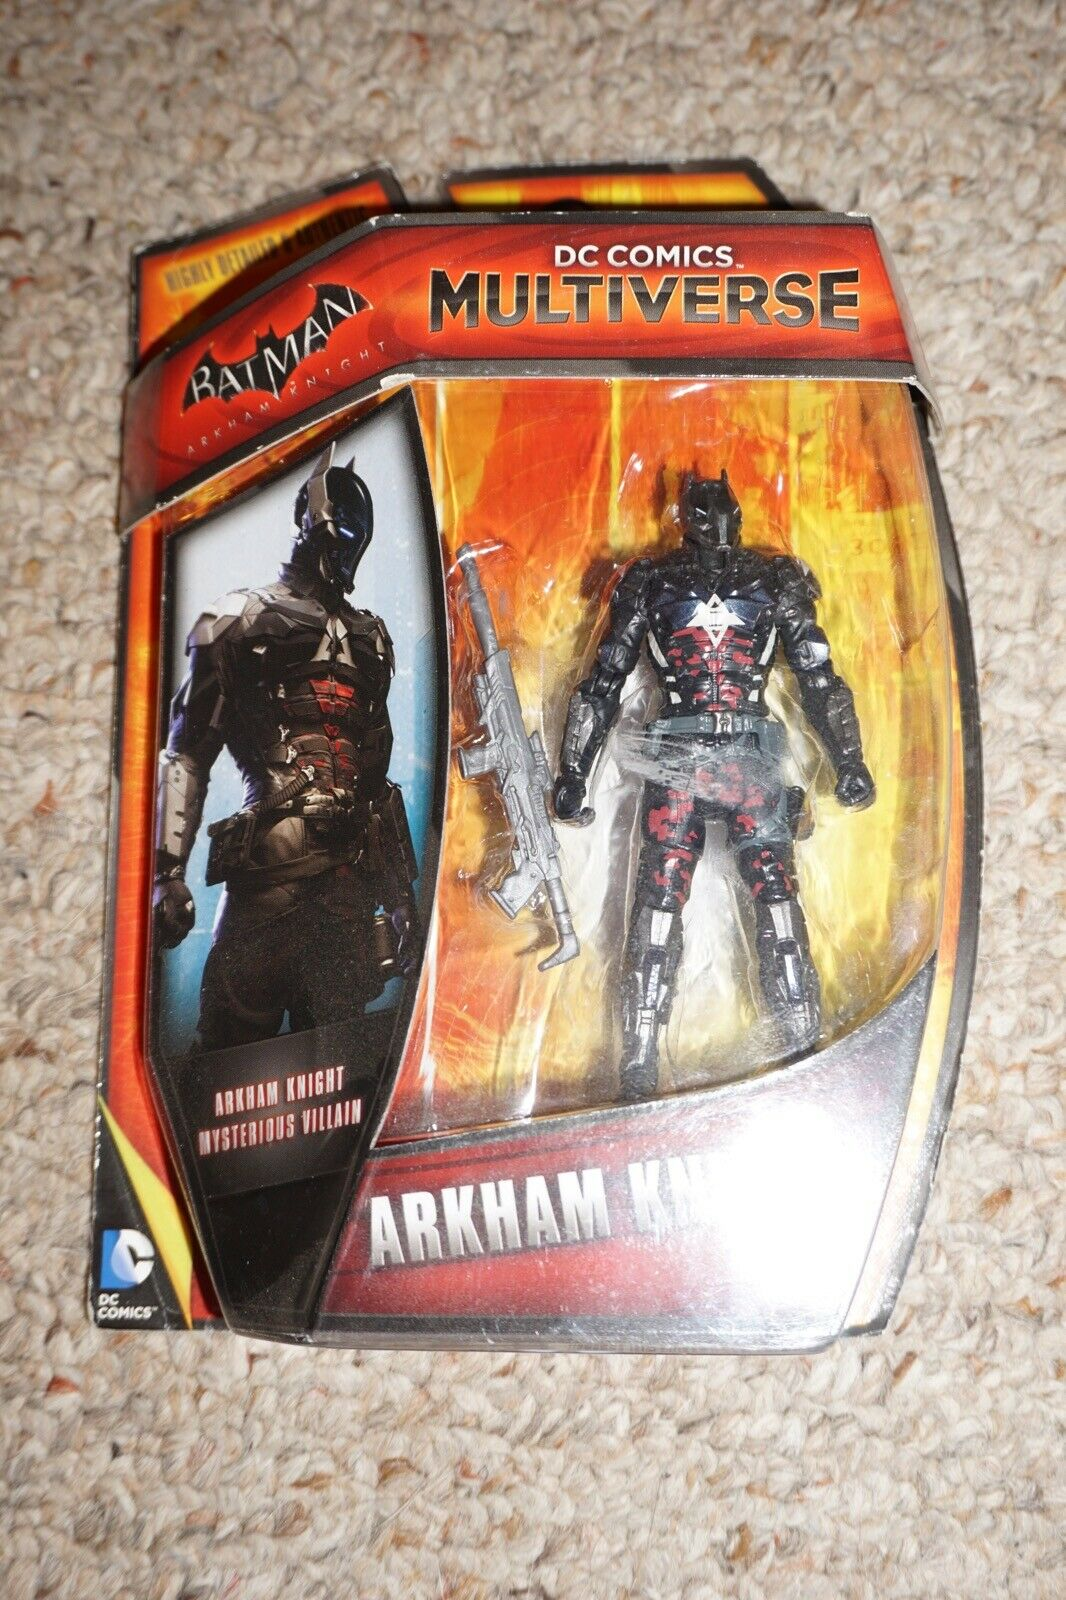 Dc Comics  Multiverse Arkham Knight Mysterious Villain nuovo Sealed  H8 cifra  colorways incredibili